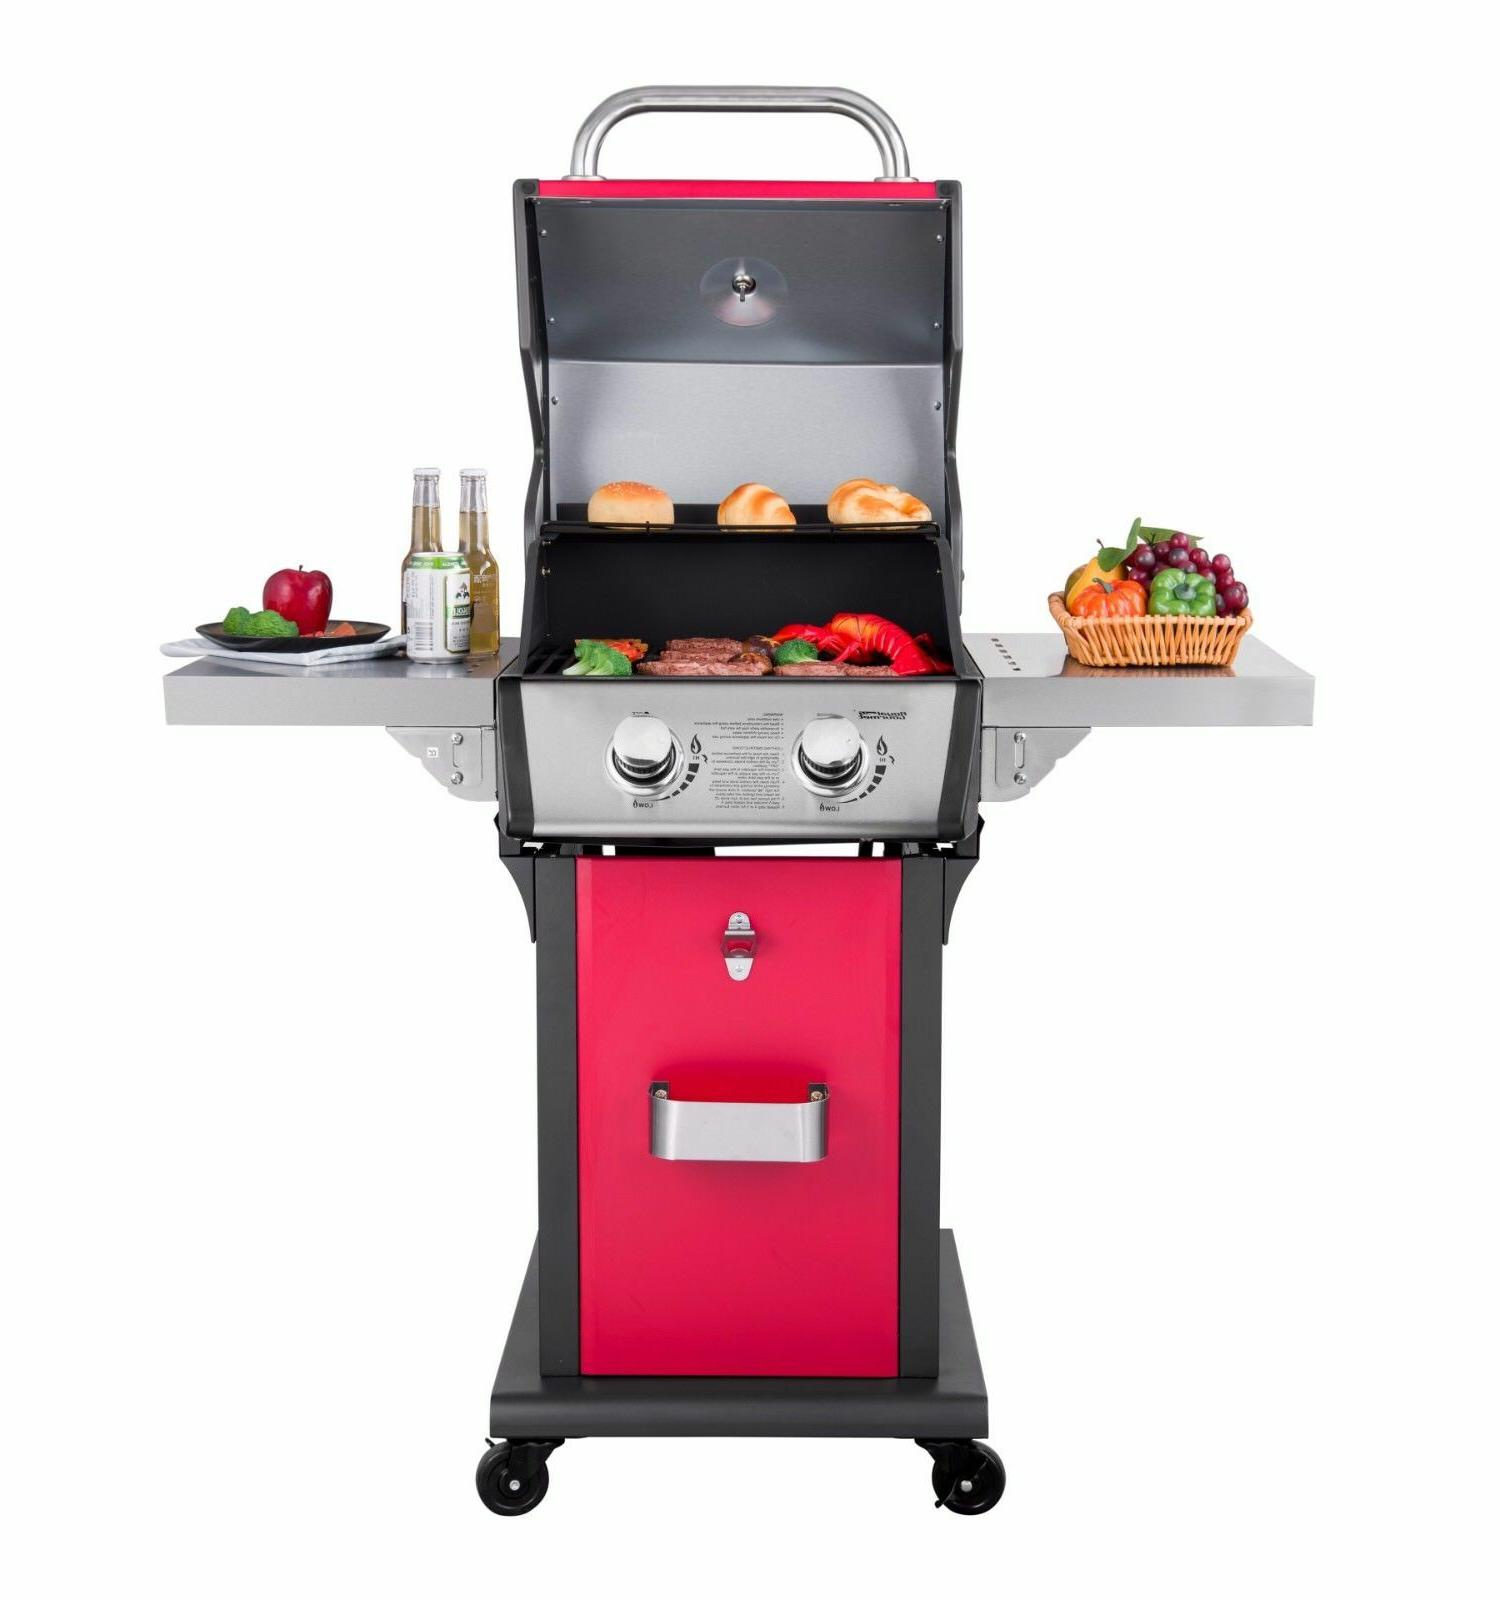 Royal Gourmet Propane Gas Grill, for Patio Cooking Family Ga